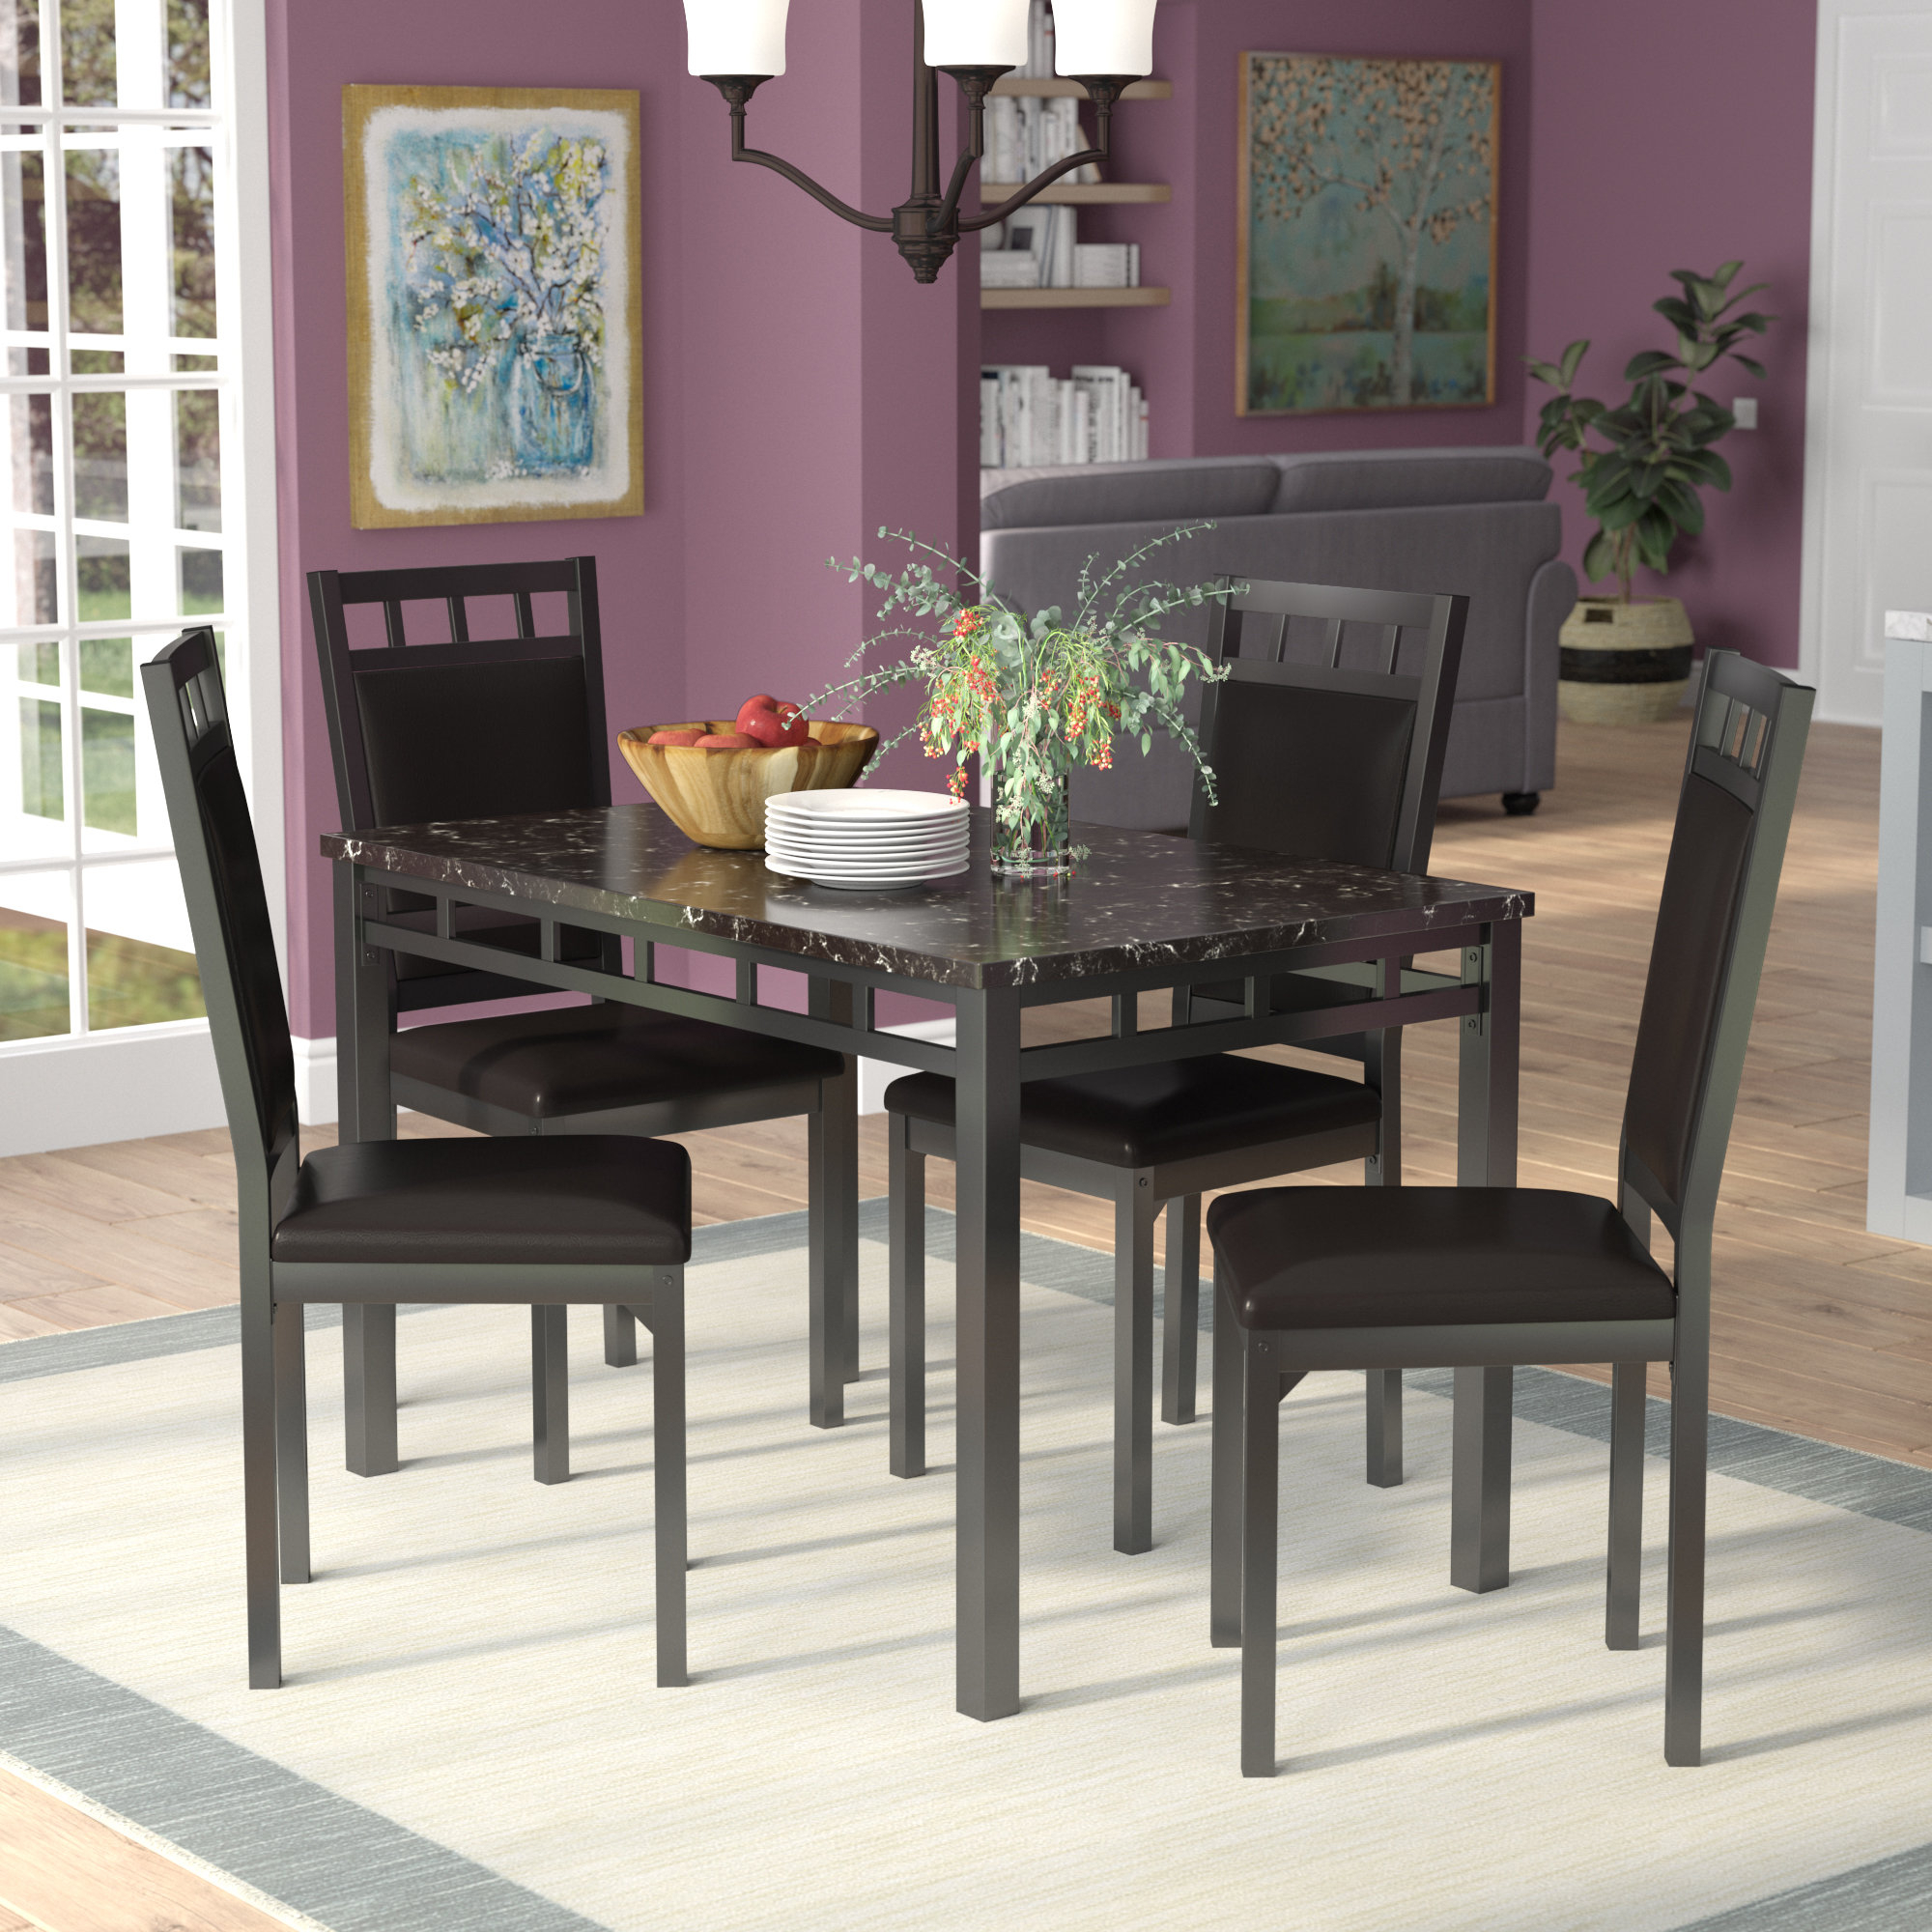 Bernice 5 Piece Dining Set With Well Known Maynard 5 Piece Dining Sets (Gallery 3 of 20)